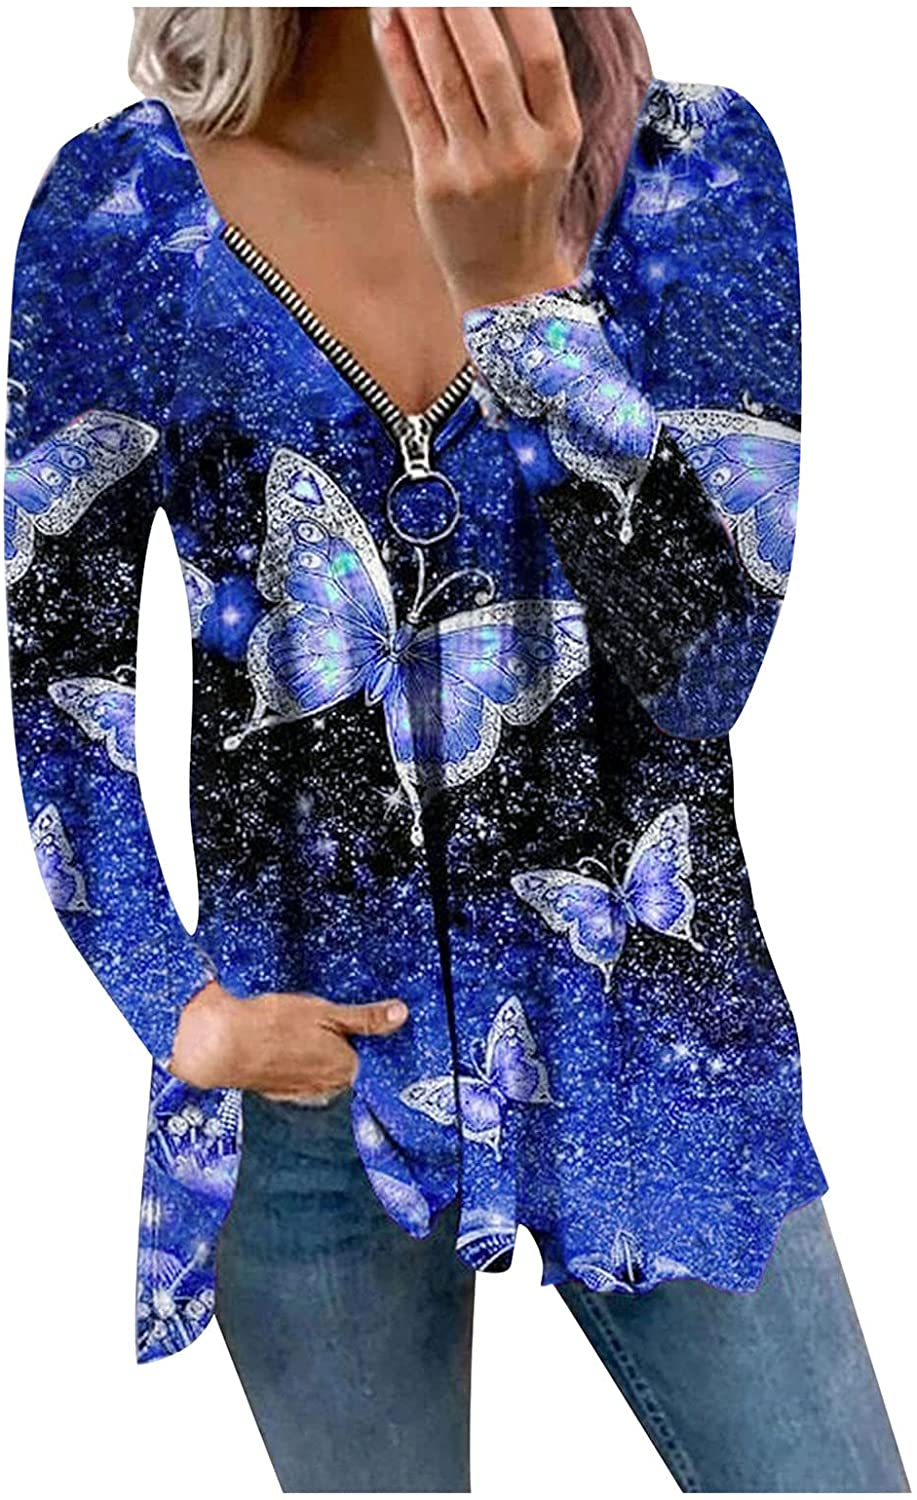 MASZONE Hoodies for Women Zip up with Designs Floral Print Lightweight Sweatshirts Long Sleeve Casual Pullover Blouses